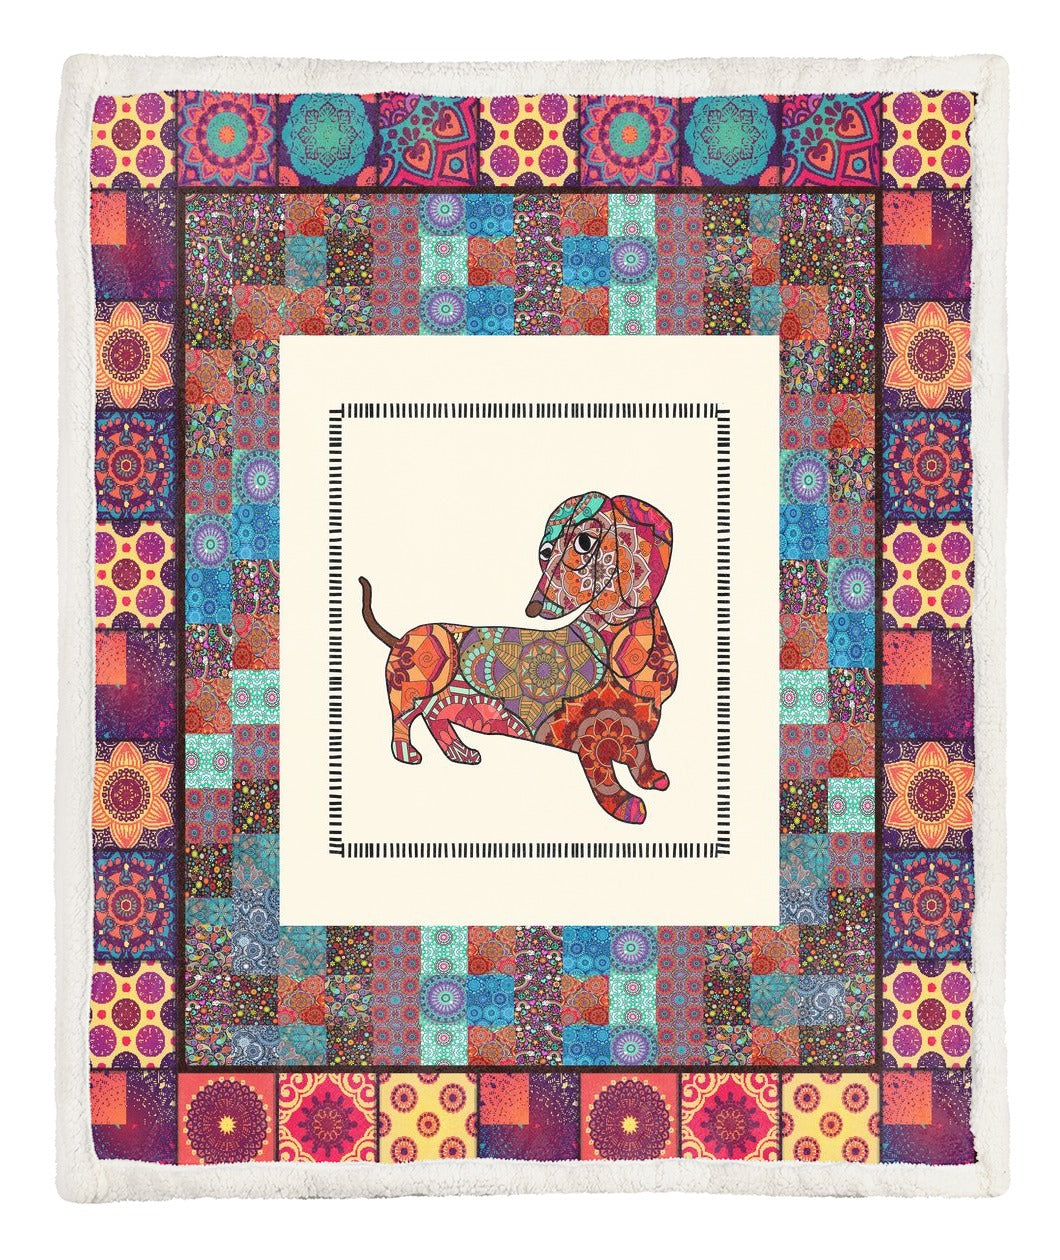 dachshund-throw-blanket-tabtvh1610782